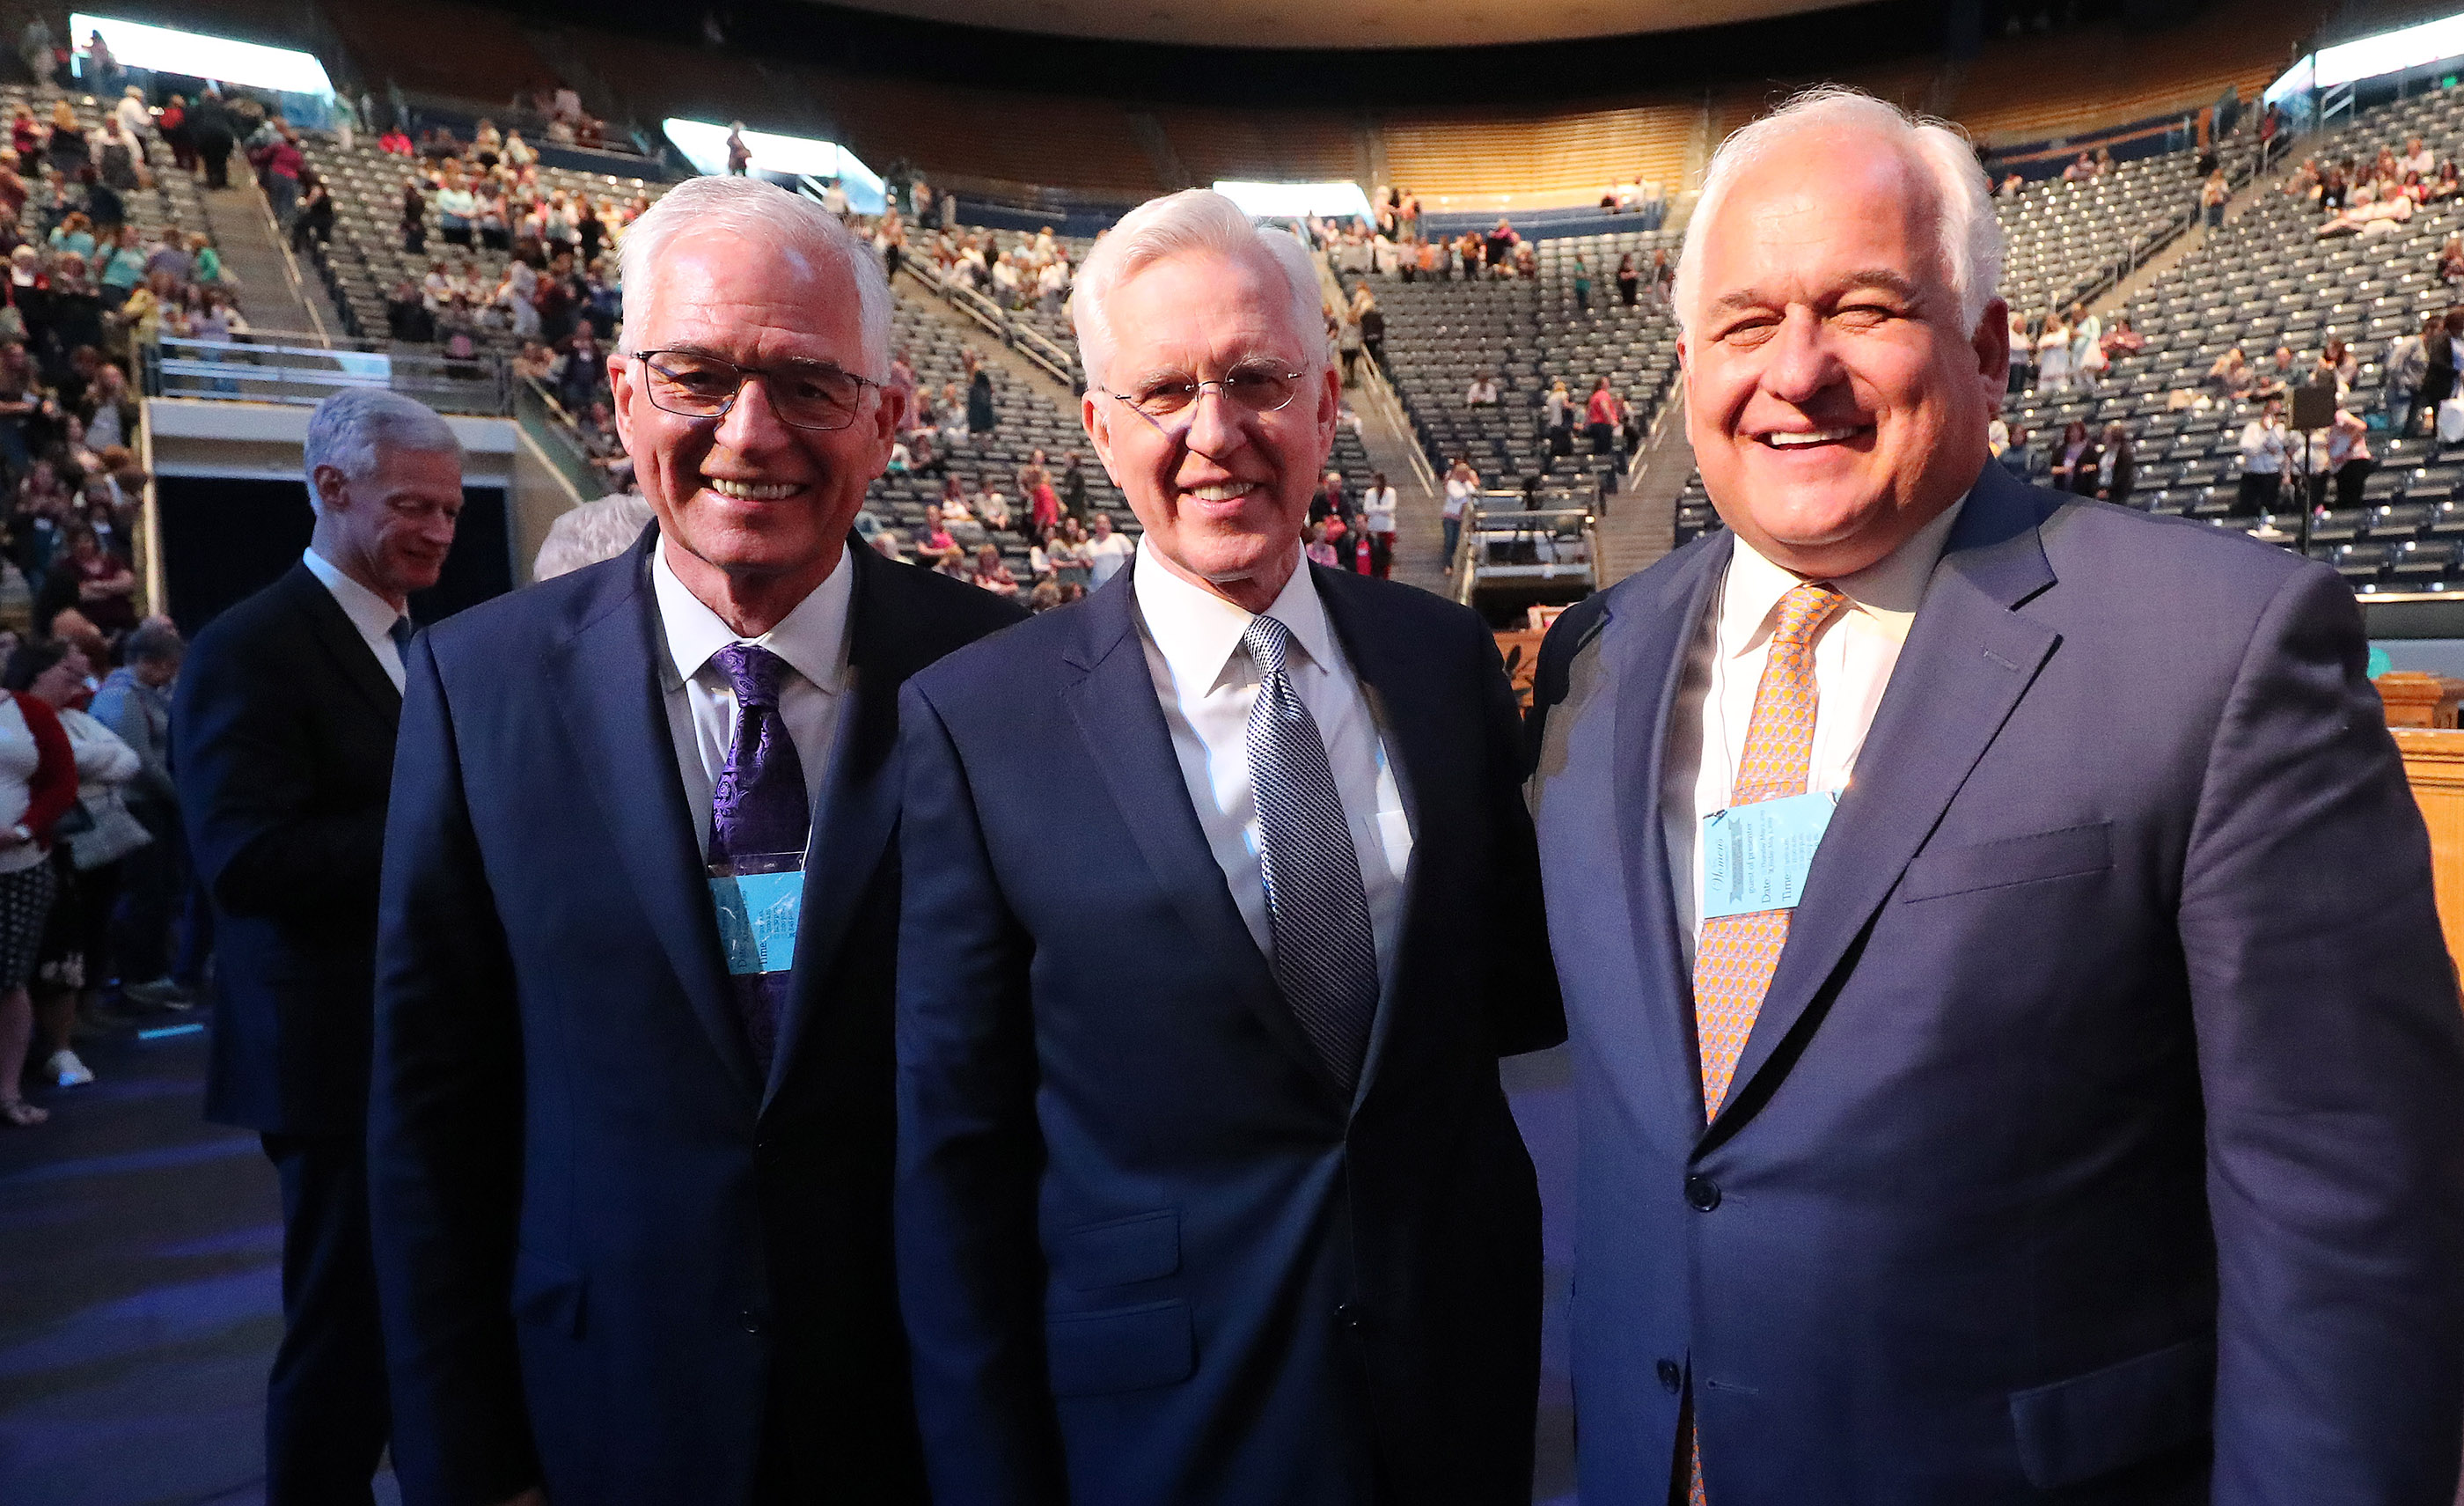 Elder D. Todd Christofferson of the Quorum of the Twelve Apostles for The Church of Jesus Christ of Latter-day Saints, center, poses with his brothers Greg and Tom during BYU Women's Conference in Provo on Friday, May 3, 2019.